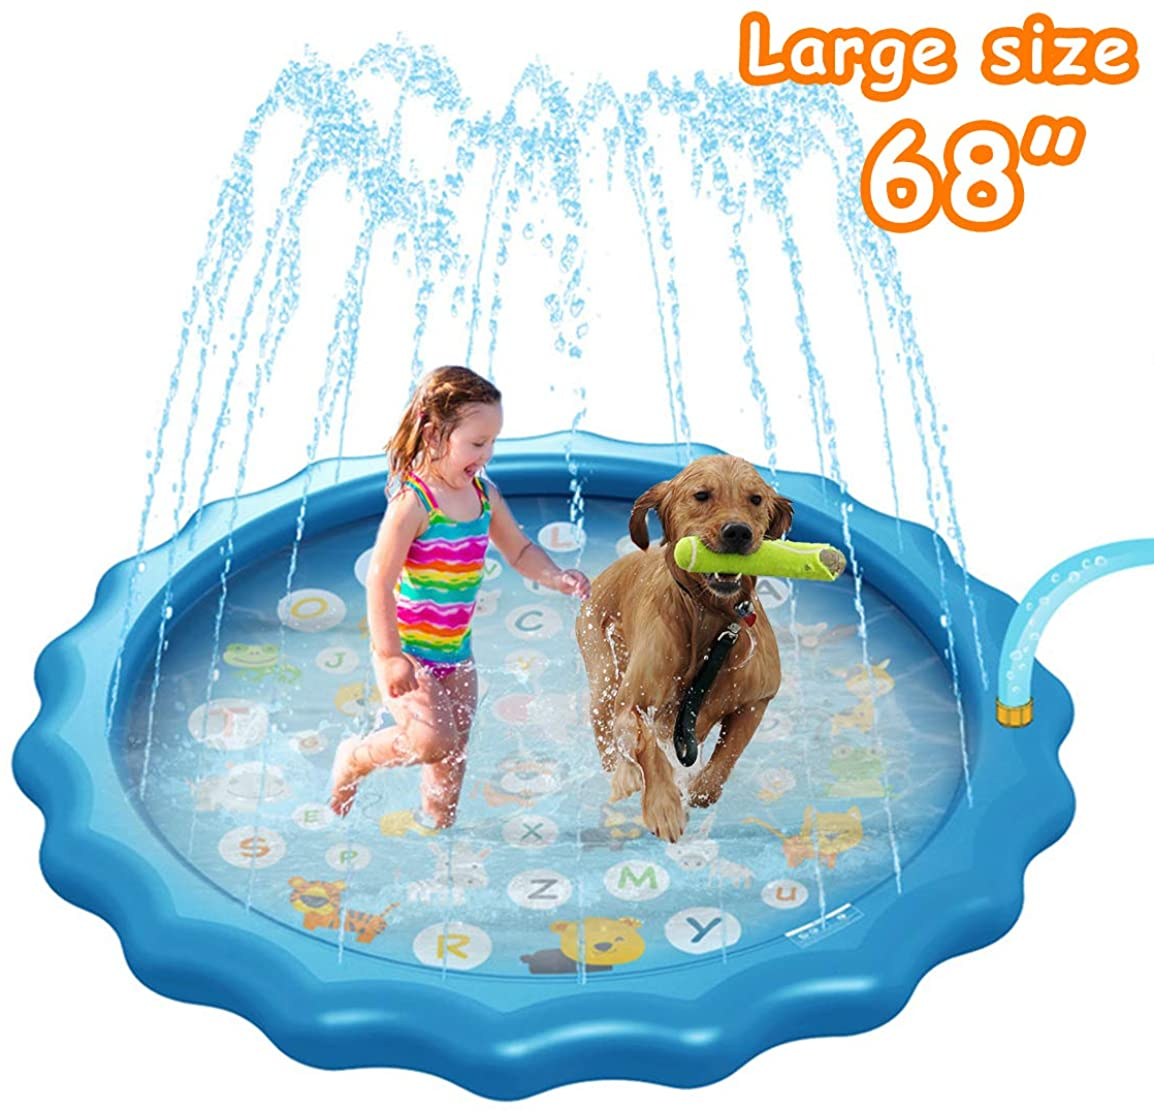 """Wrystte Kids Inflatable Pool with Sprinkler, Splash Pad Swimming Pool for Kids Learning, 68"""" Outdoor Inflatable Water Toys for Babies and Toddlers Age 1 2 3 4 5 6 7 8"""